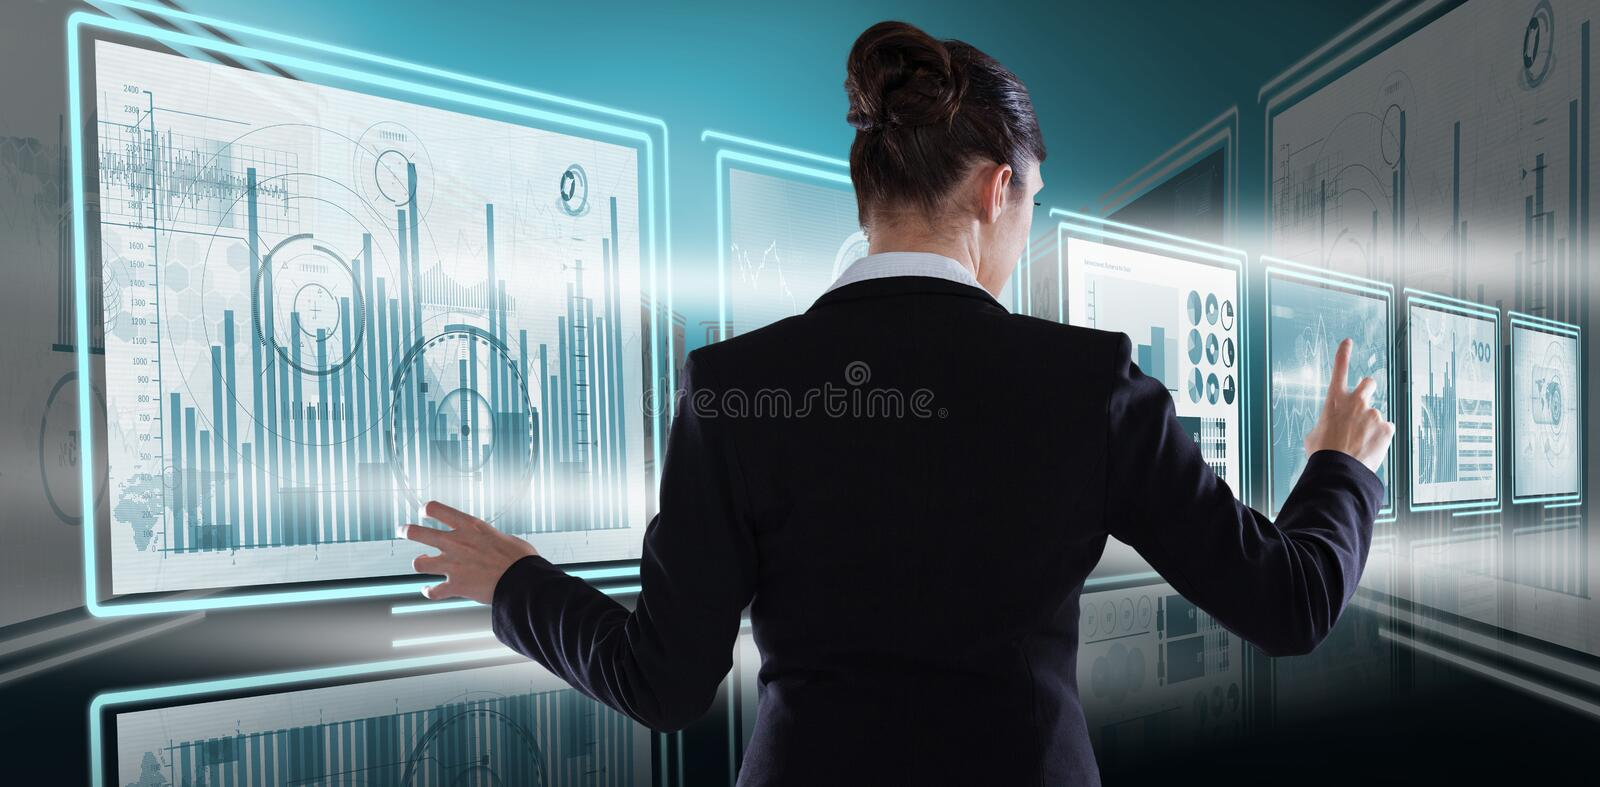 Composite image of rear view of businesswoman using imaginative digital screen stock images